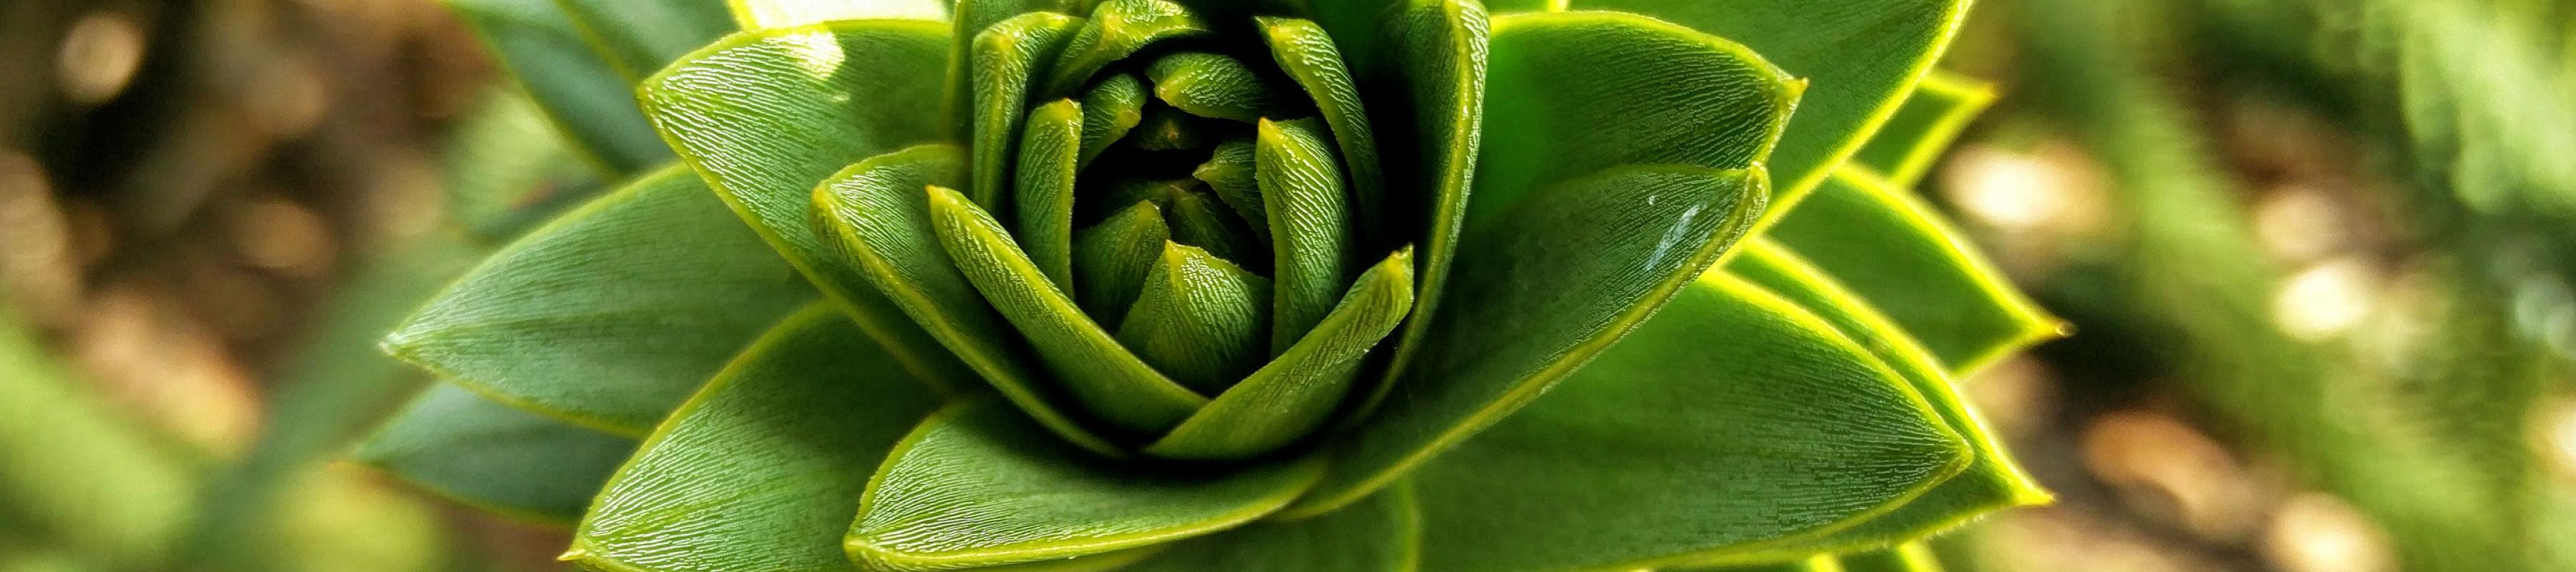 Close-up of monkey puzzle tree's spiralled leaves